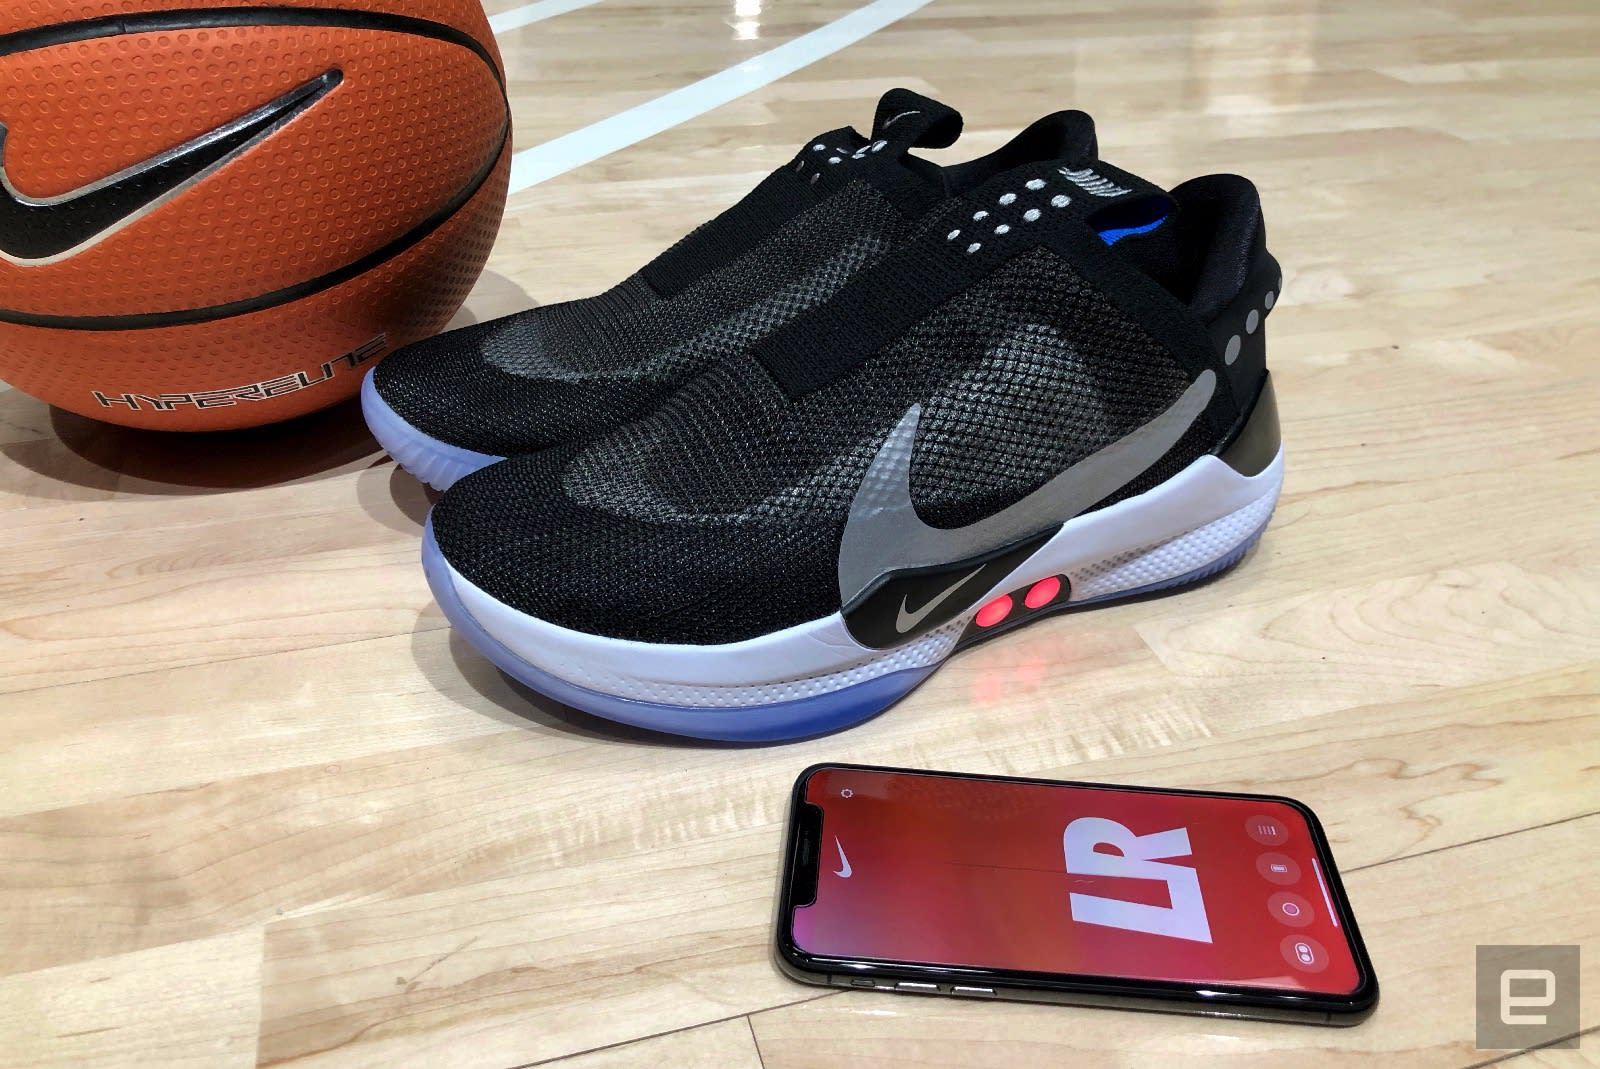 7e623955e A closer look at Nike s Adapt BB auto-lacing basketball shoes